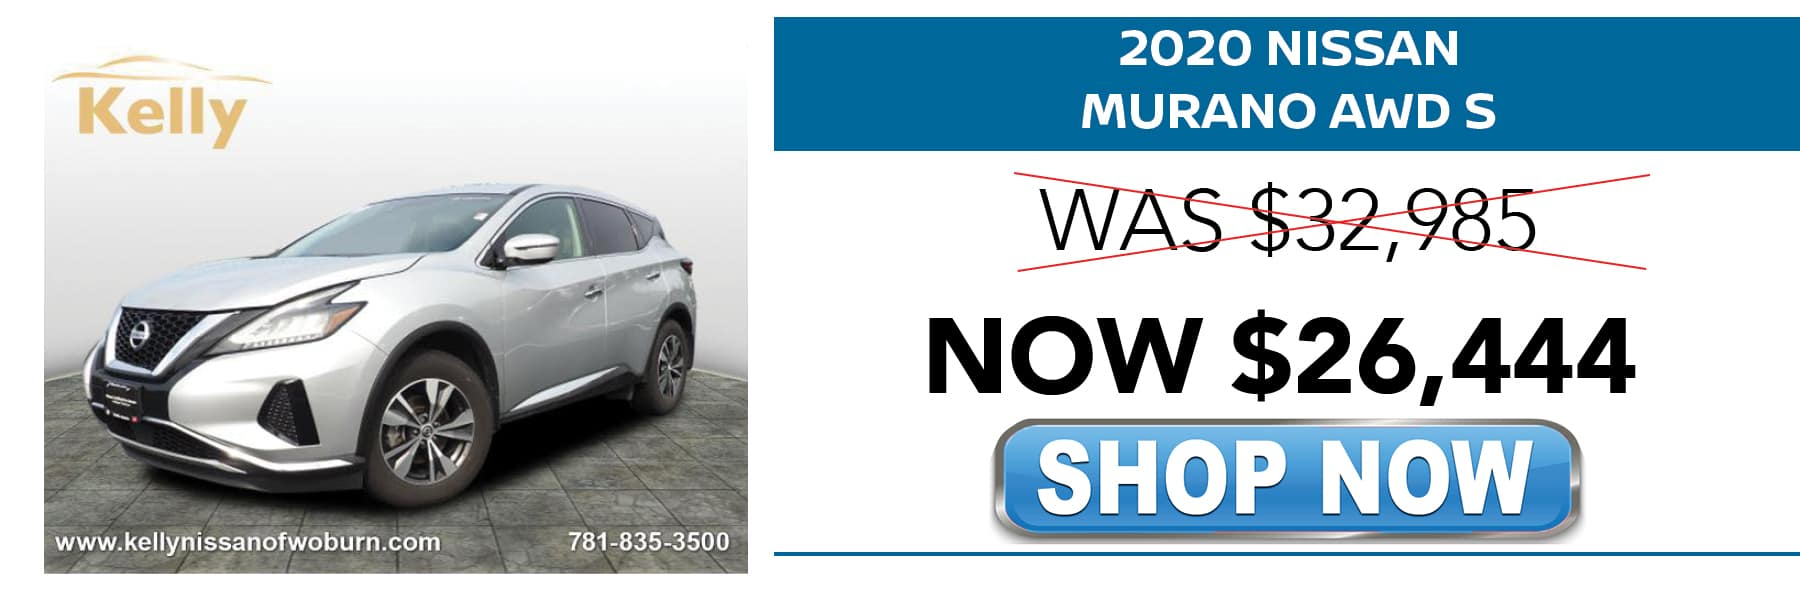 10_7_PREOWNED_WOBURN2